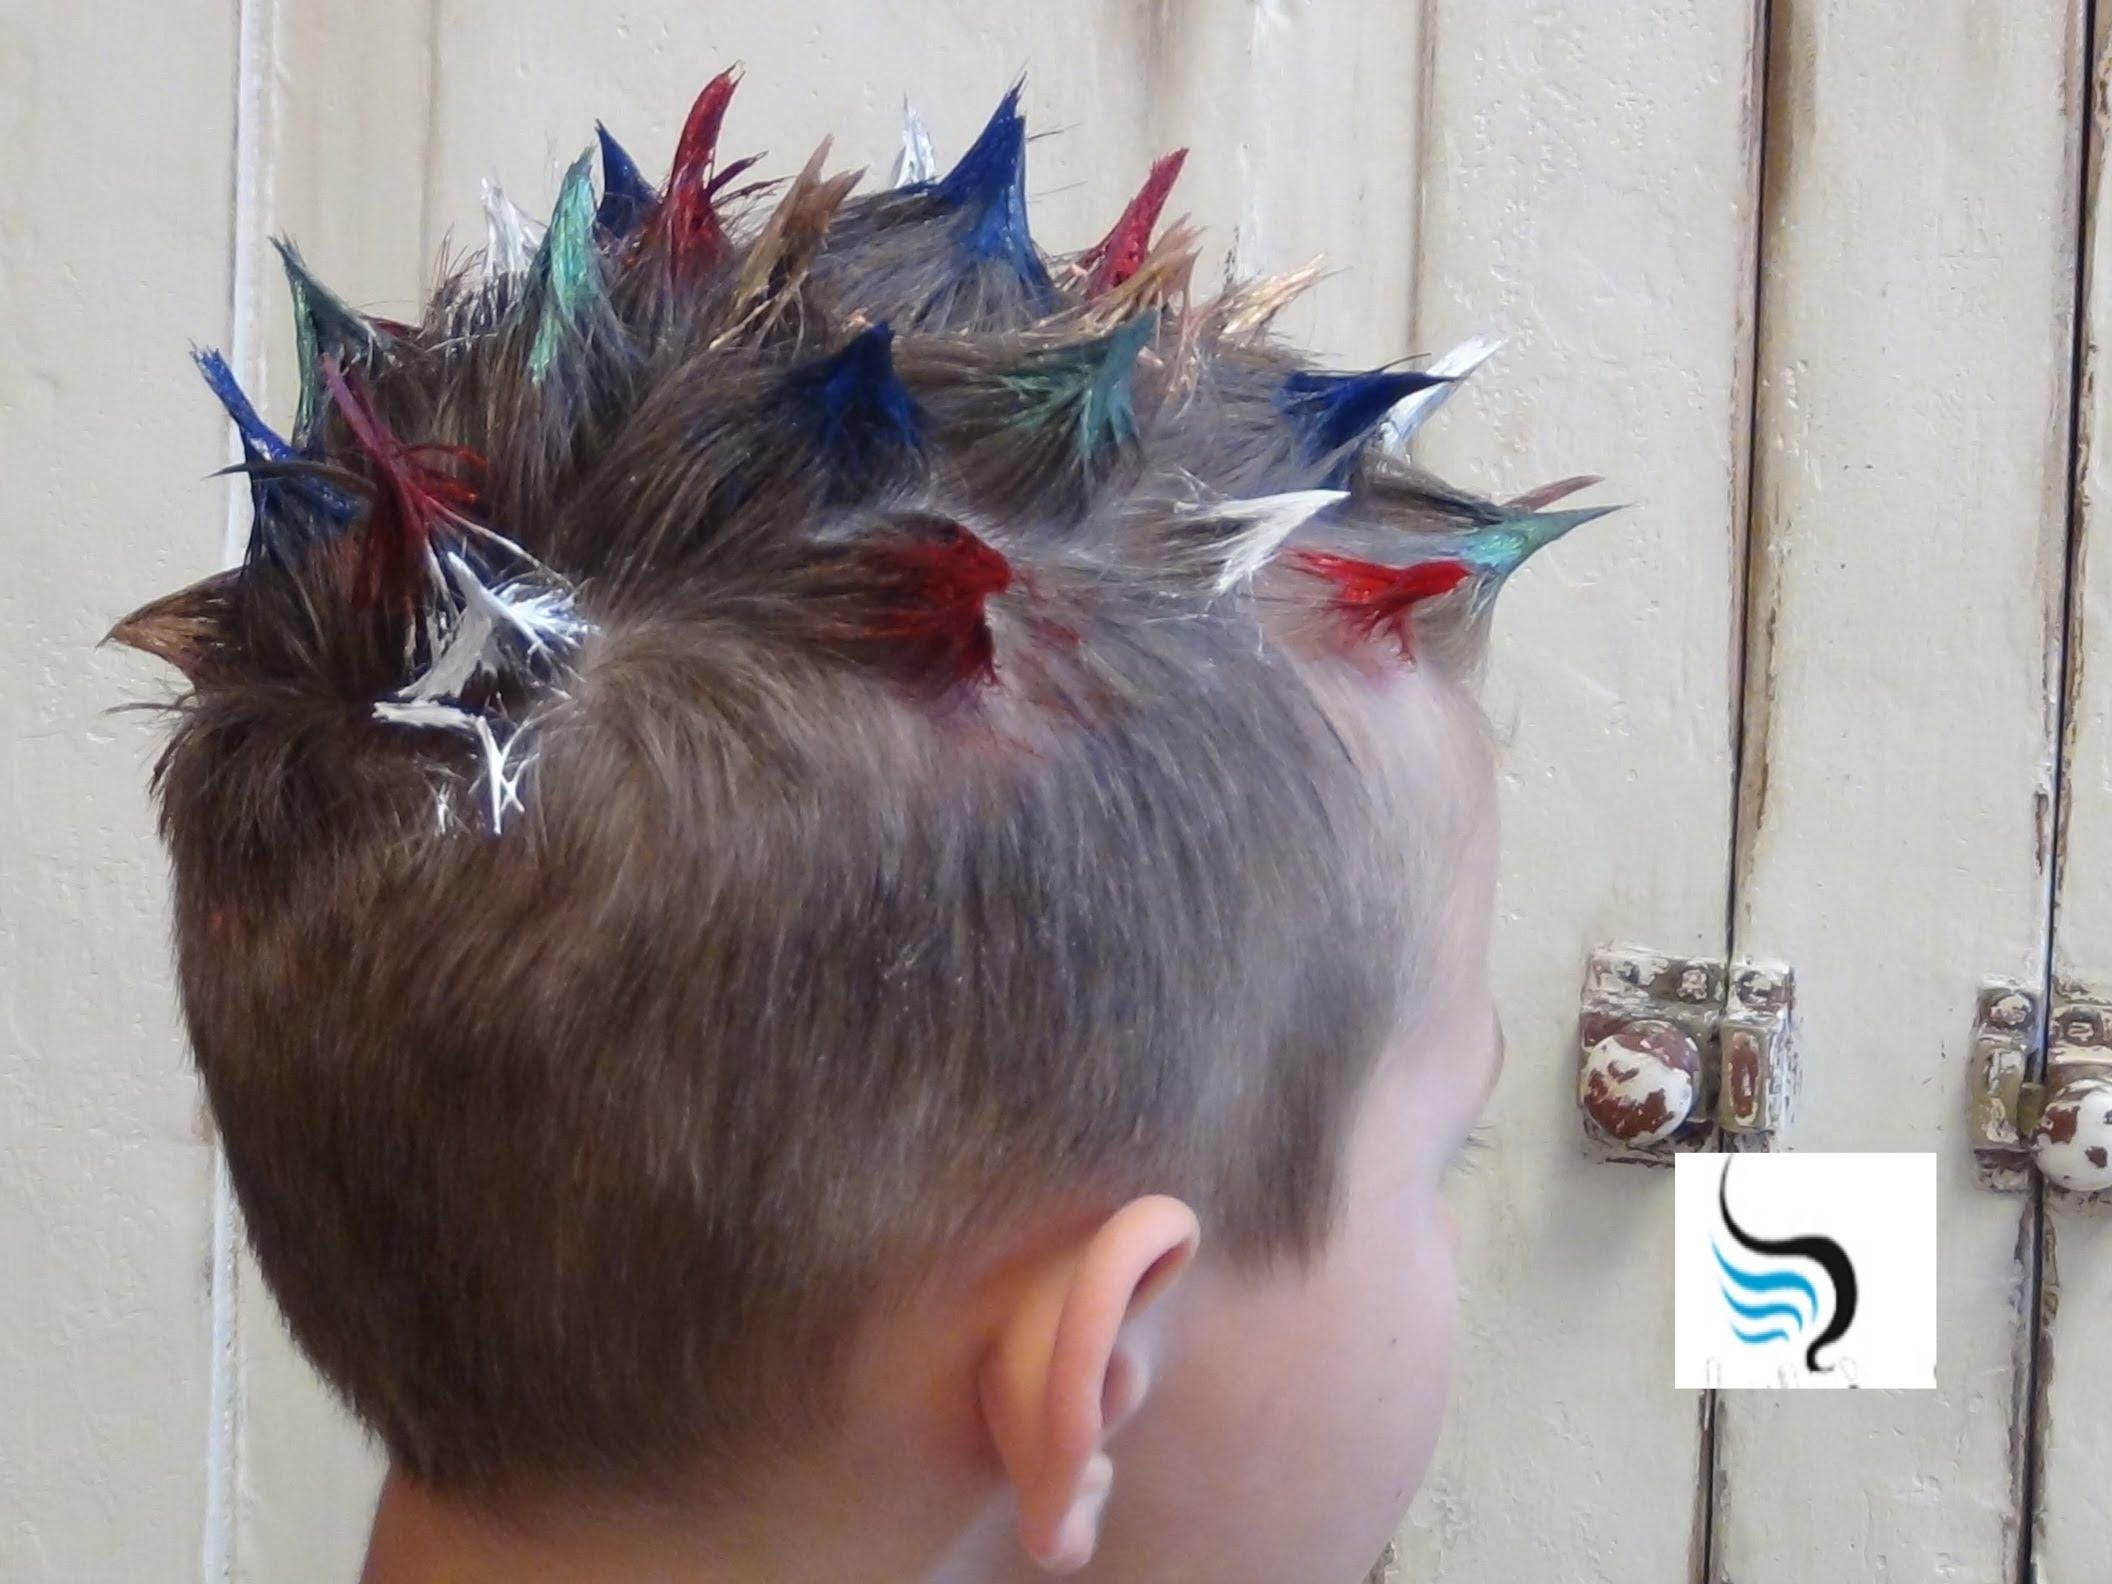 How To Do Crazy Spiked And Mohawk Hairstyle For Boys Hair In With Regard To Favorite Spiky Mohawk Hairstyles (View 16 of 20)